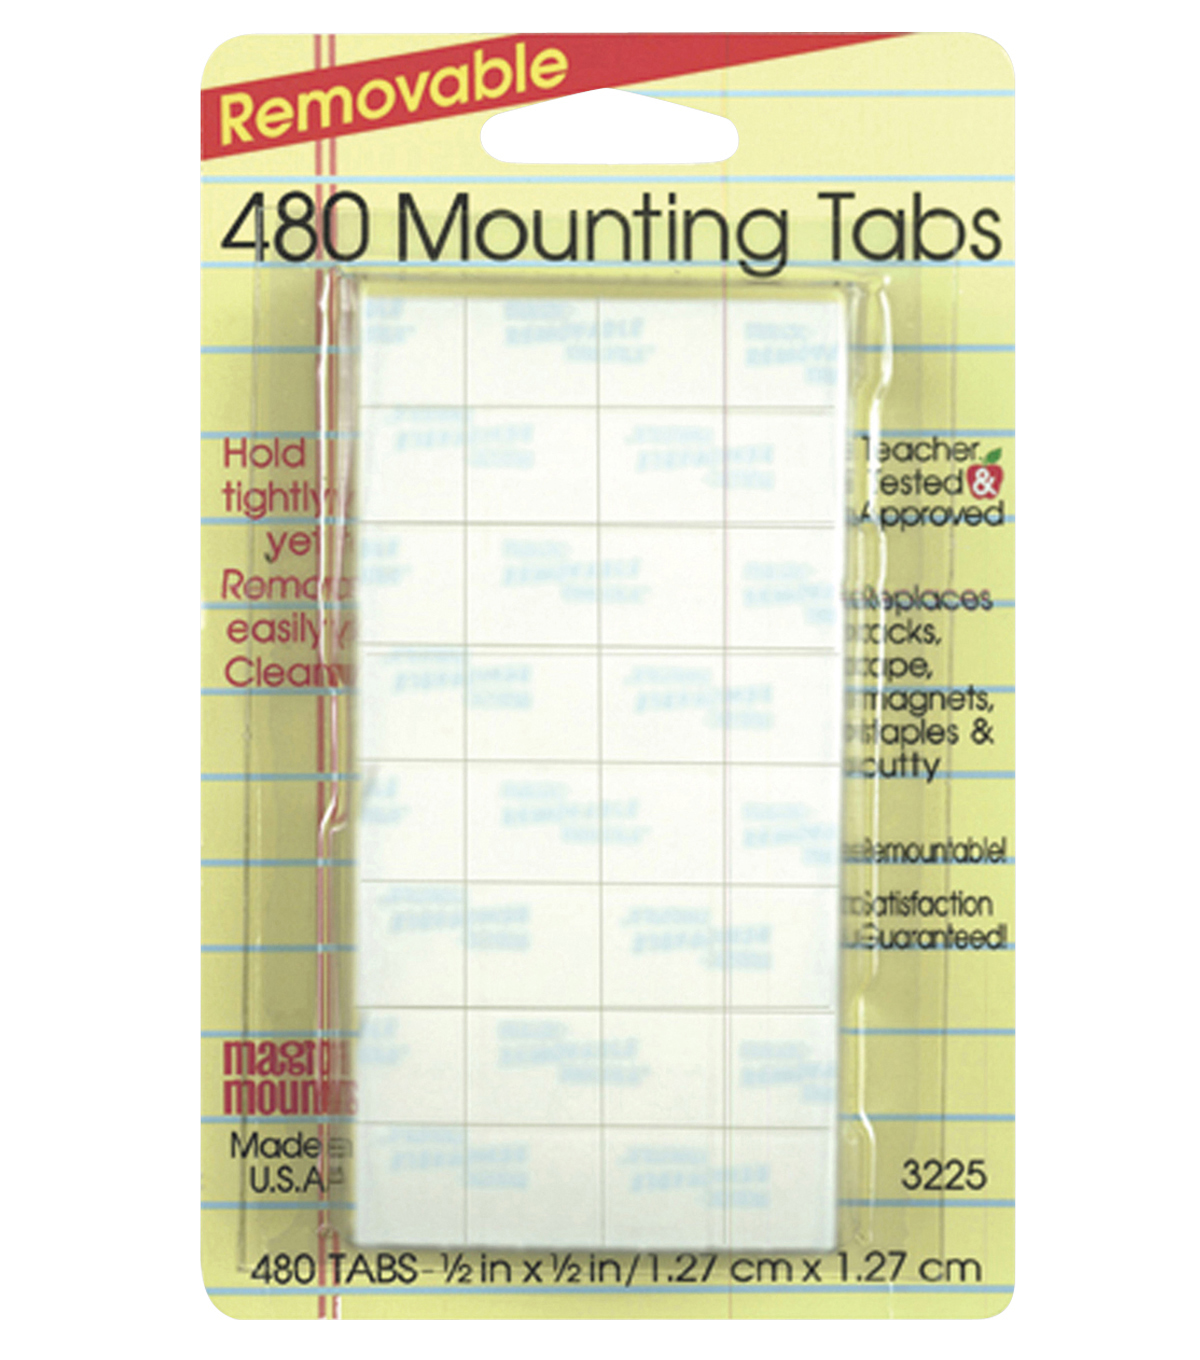 Magic Mounts Removable Mounting Tabs, 1/2\u0022 x 1/2\u0022, 480/Pack, 3 Packs